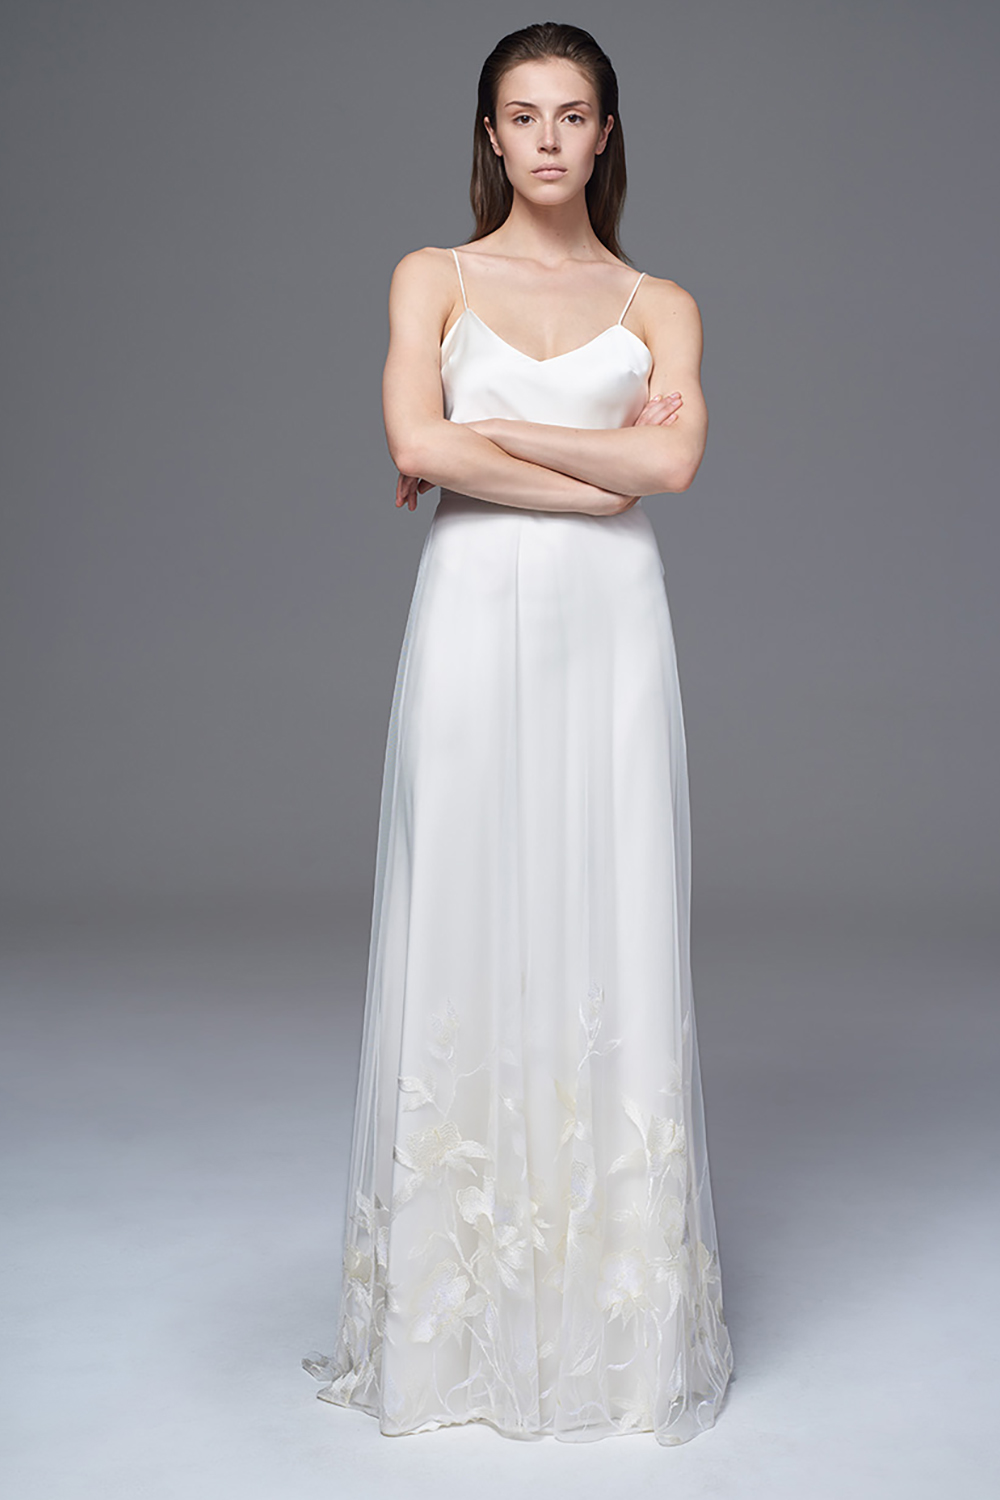 THE LILY SHEER TULLE SKIRT WITH CLIMBING EMBROIDERED FLOWERS AND CLASSIC IRIS SLIP. BRIDAL WEDDING DRESS BY HALFPENNY LONDON